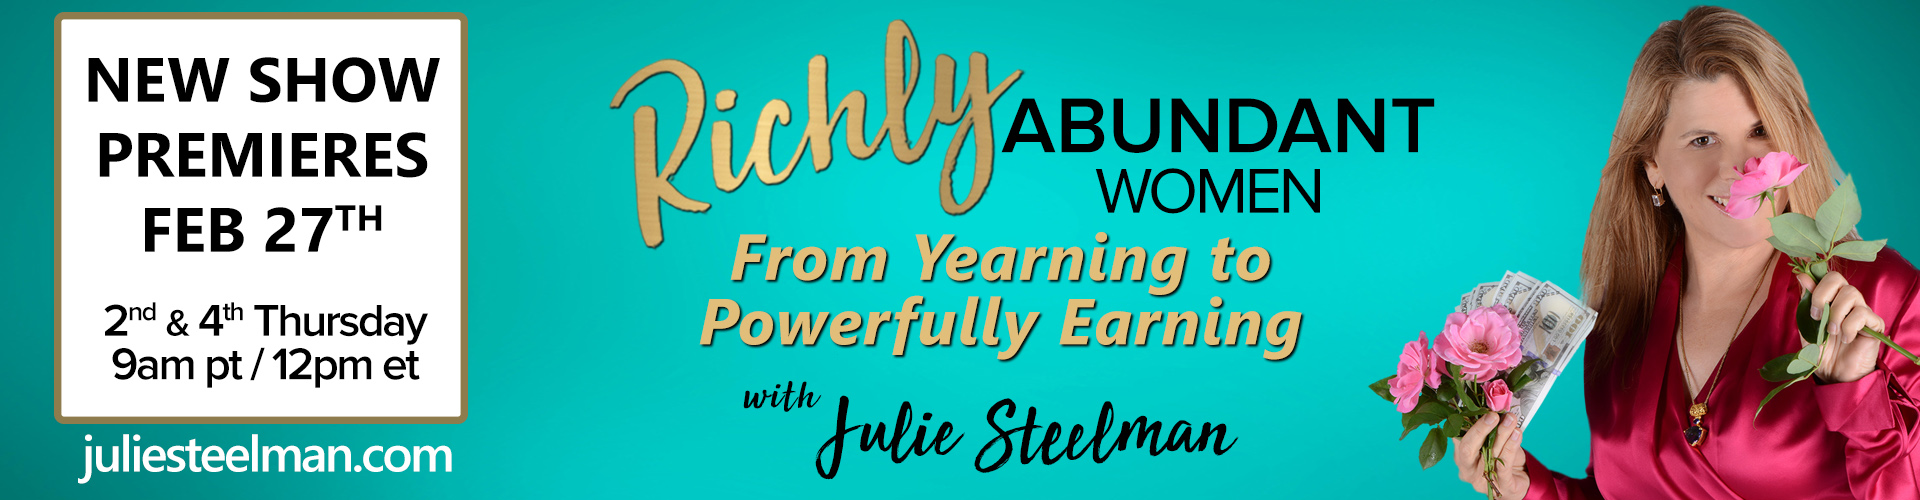 Julie Steelman Richly Abundant Women